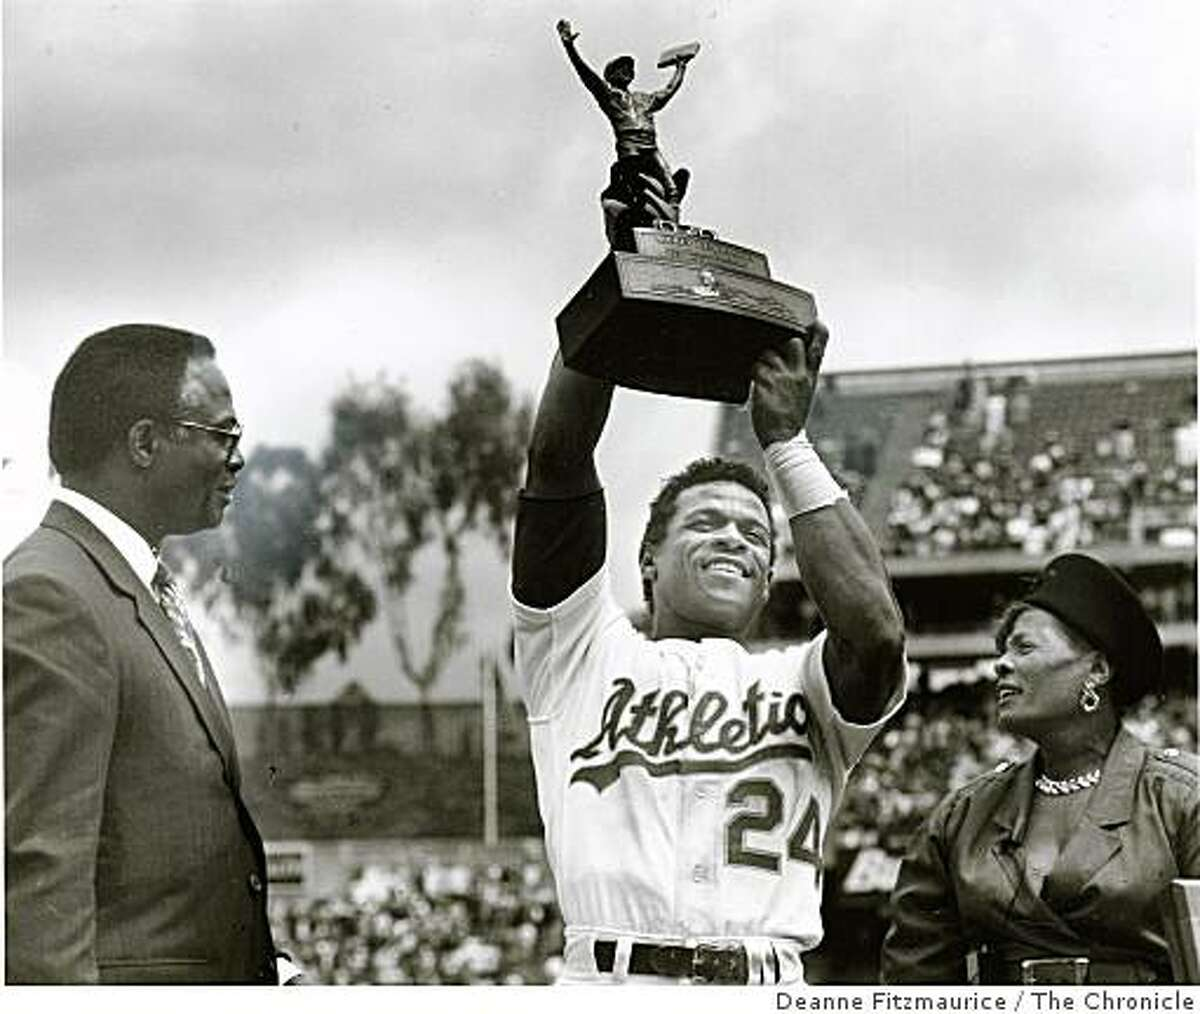 May 1, 1991 Rickey Henderson steals 3rd base at Oakland Coliseum against the N.Y. Yankees to surpass Lou Brock's previous record of 938 stolen bases. He raises the trophy he was presented with his Mother, Bobbie, at his right and Lou Brock at his left.